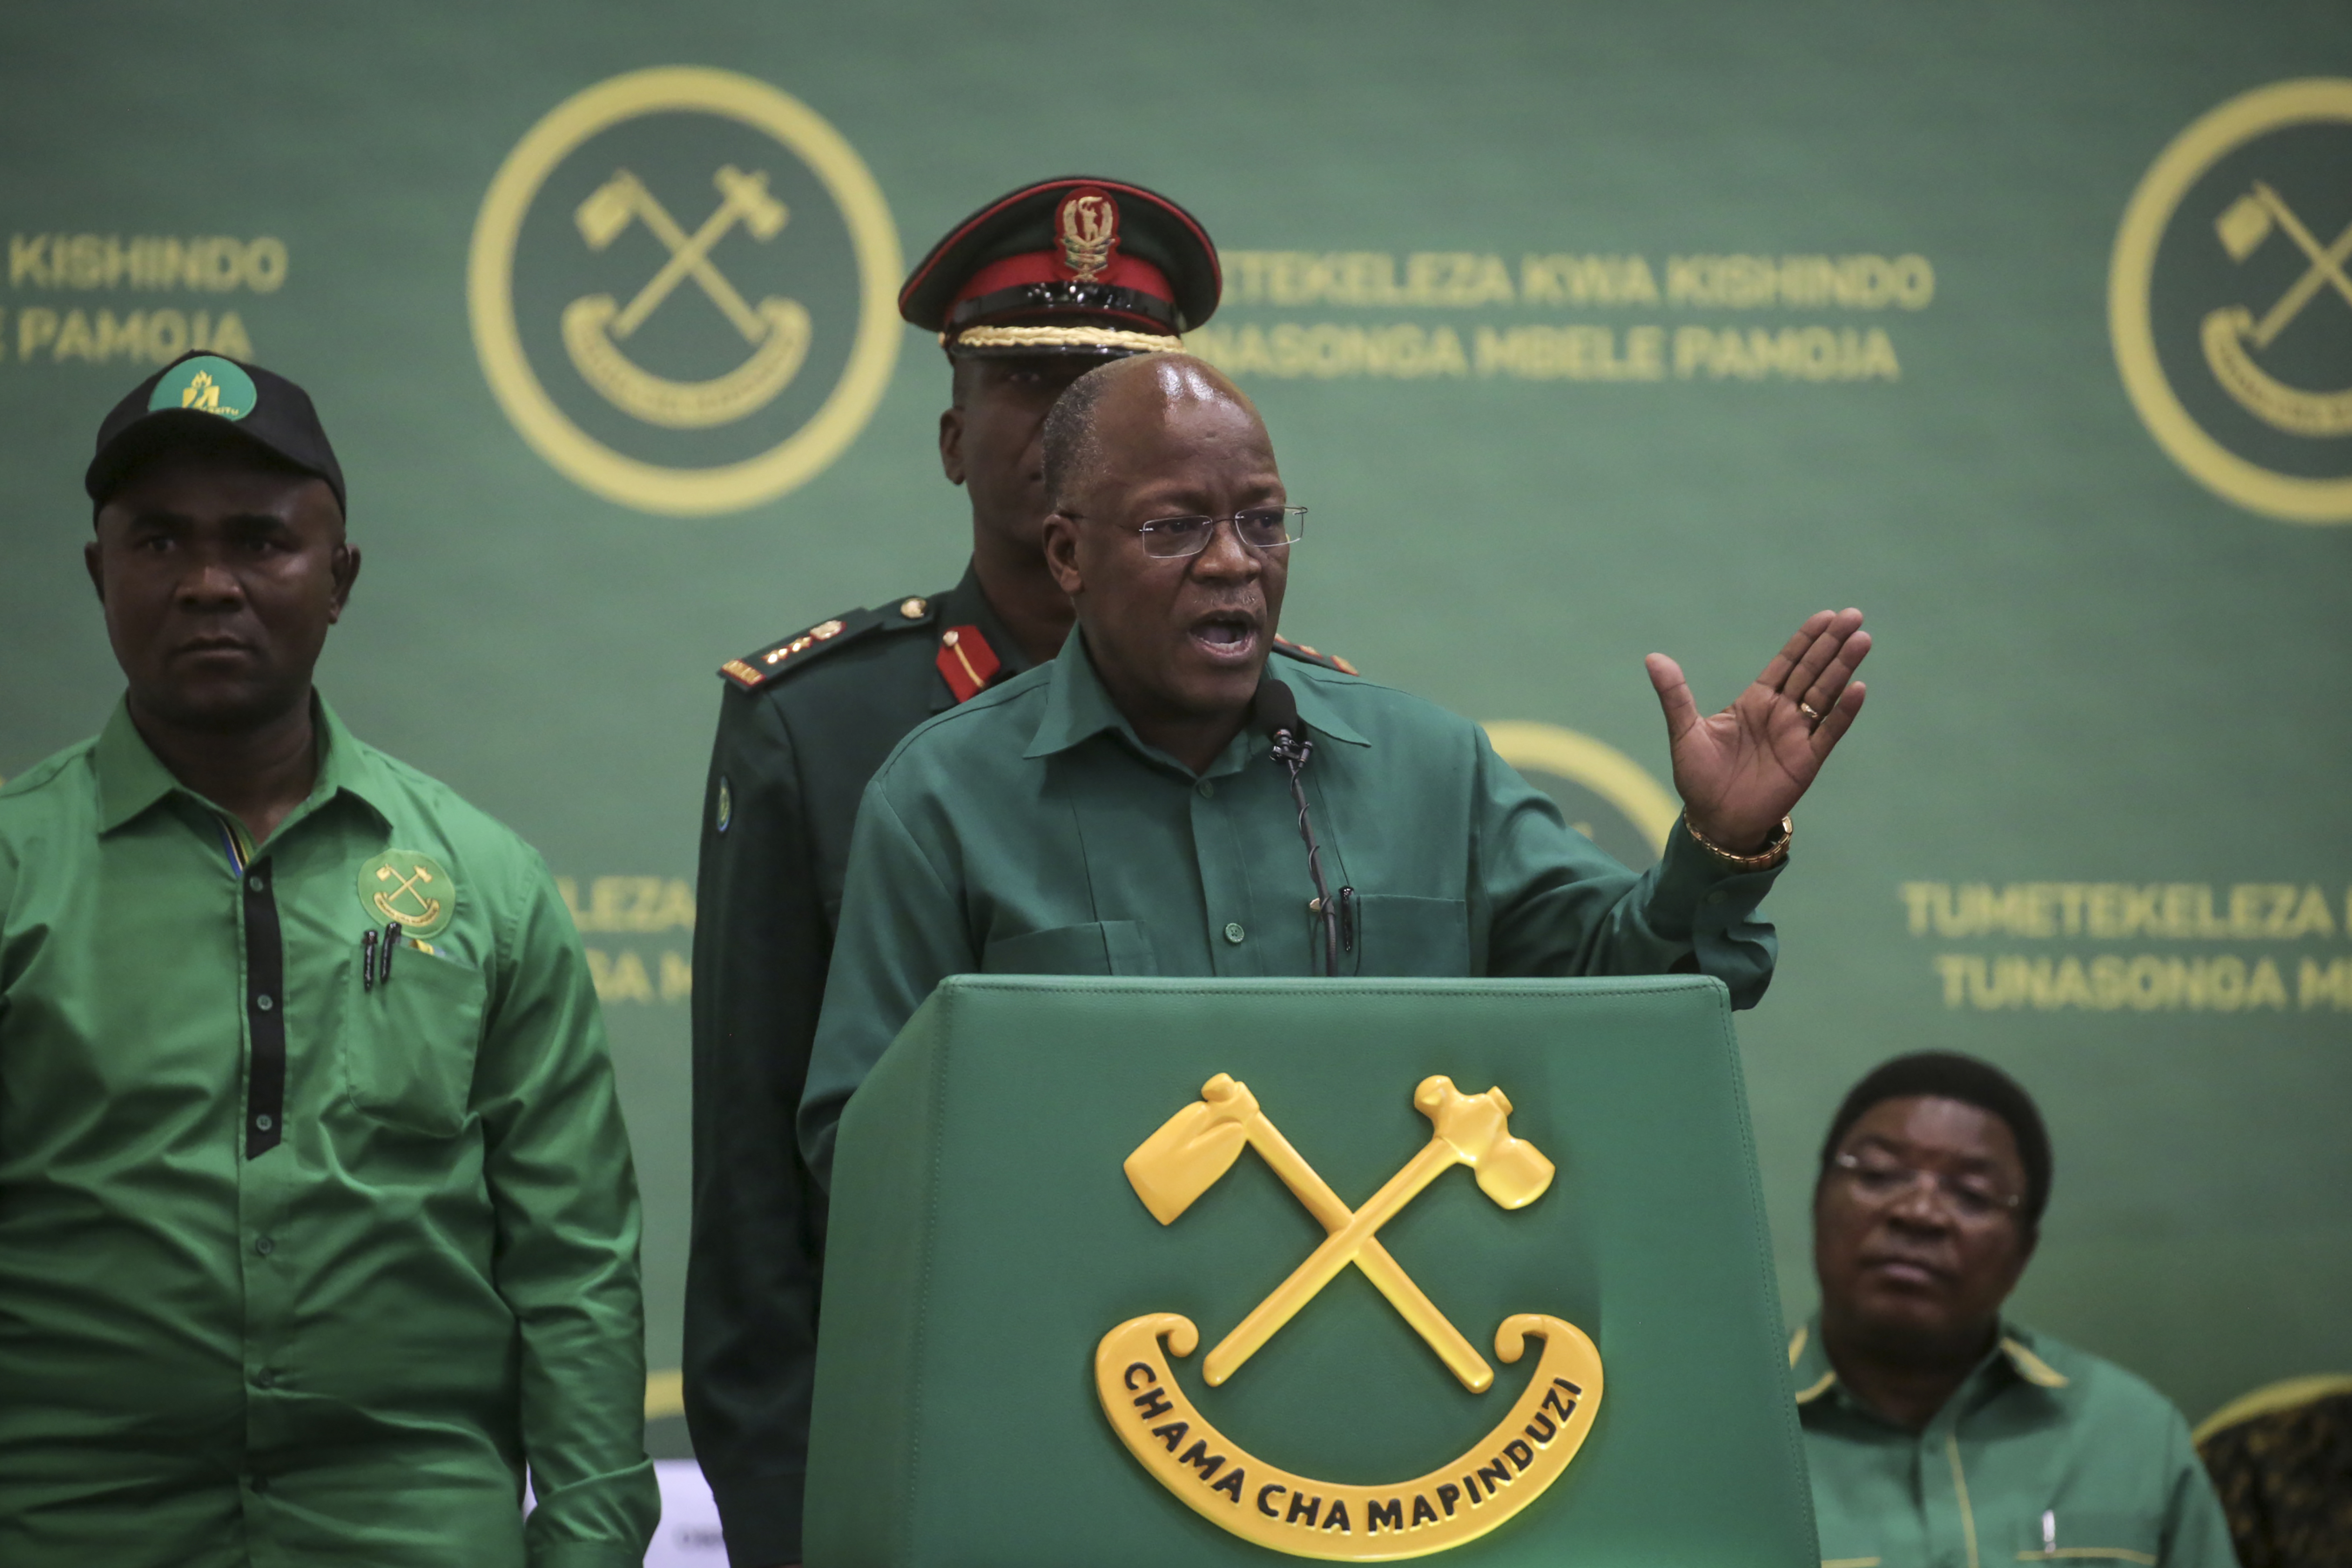 Tanzania's President John Magufuli speaks at the national congress of his ruling Chama cha Mapinduzi (CCM) party in Dodoma, Tanzania, on July 11, 2020.